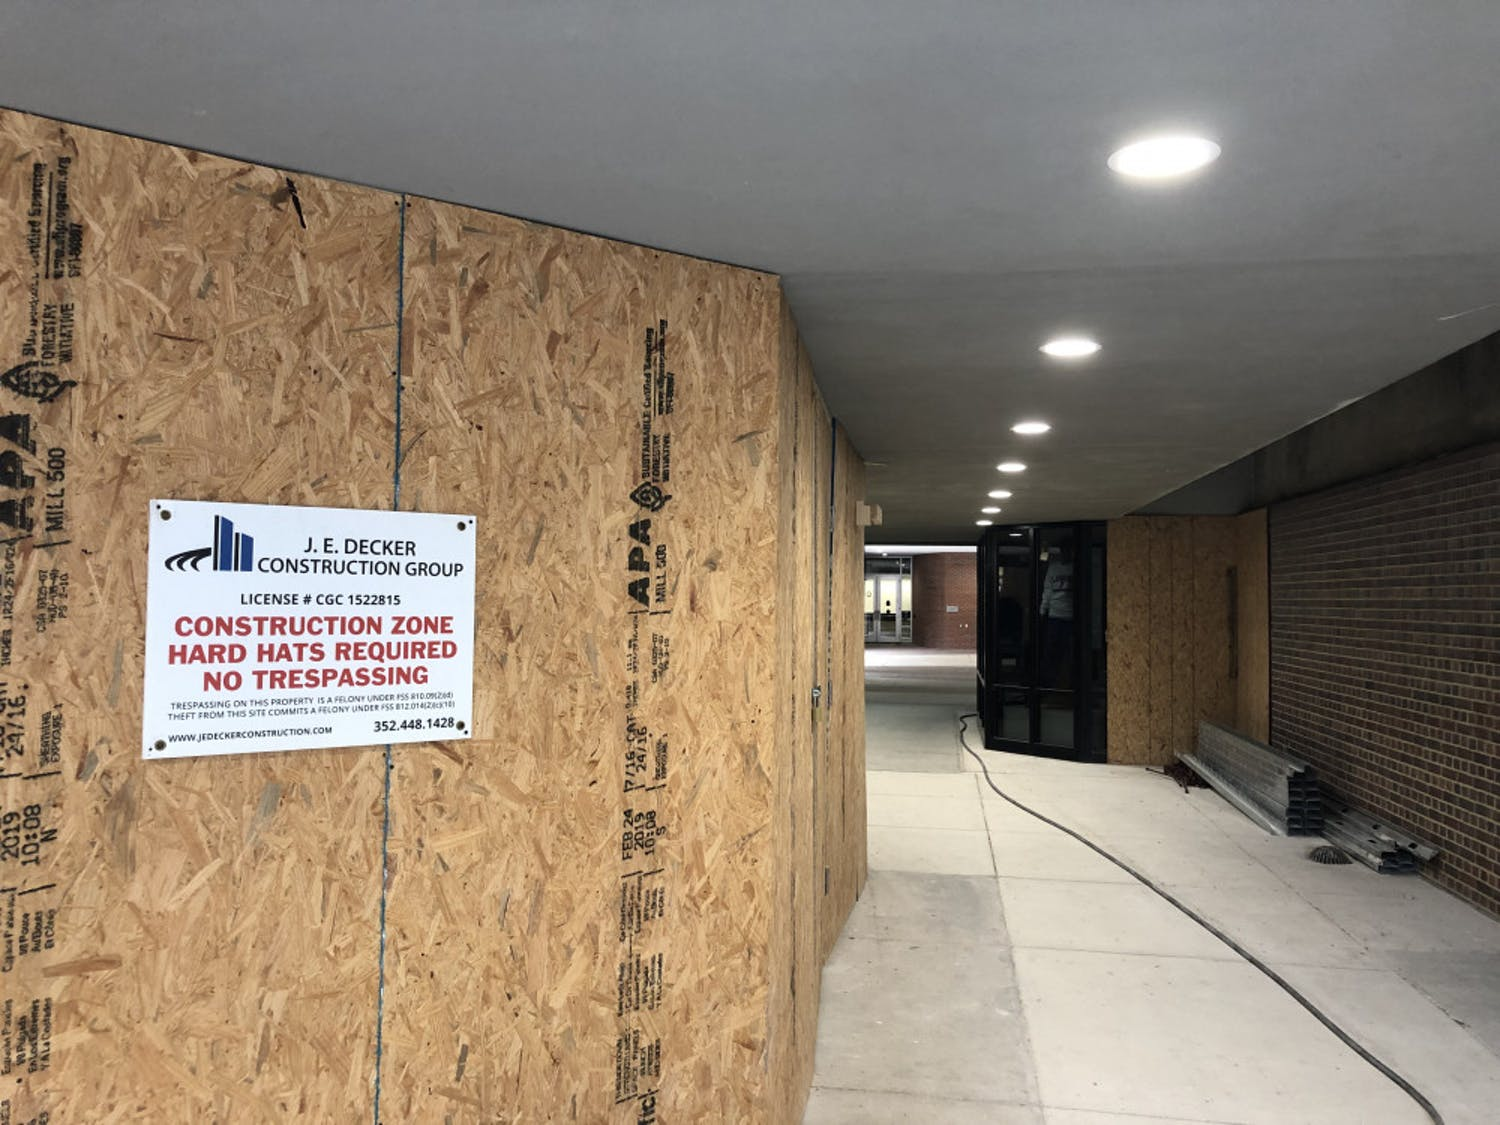 The Experiential Learning Hub (pictured here) and other parts of UF's Levin College of Law have been under renovation since late February. The projects are expected to reopen in early August.